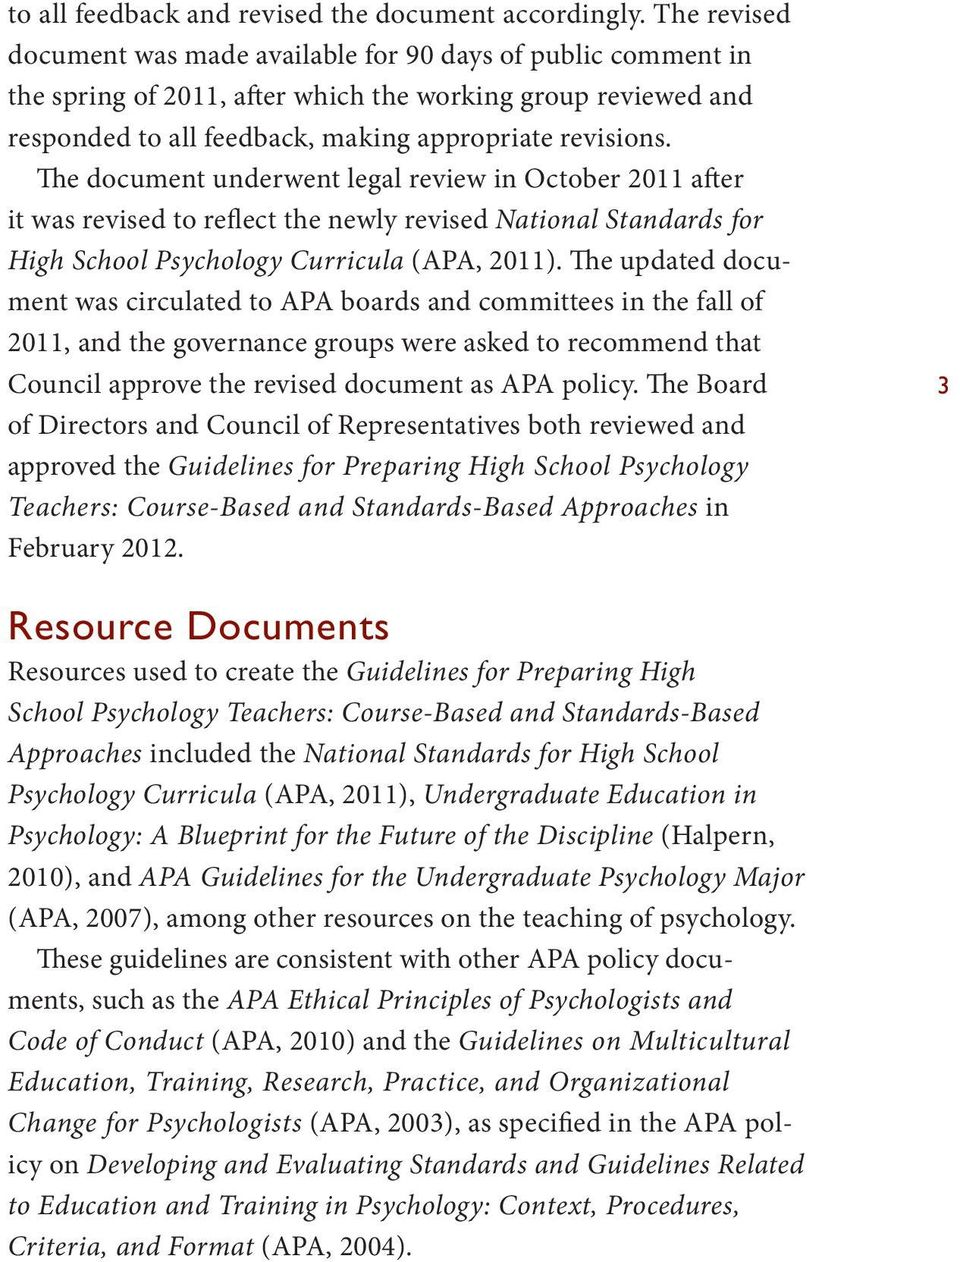 The document underwent legal review in October 2011 after it was revised to reflect the newly revised National Standards for High School Psychology Curricula (APA, 2011).